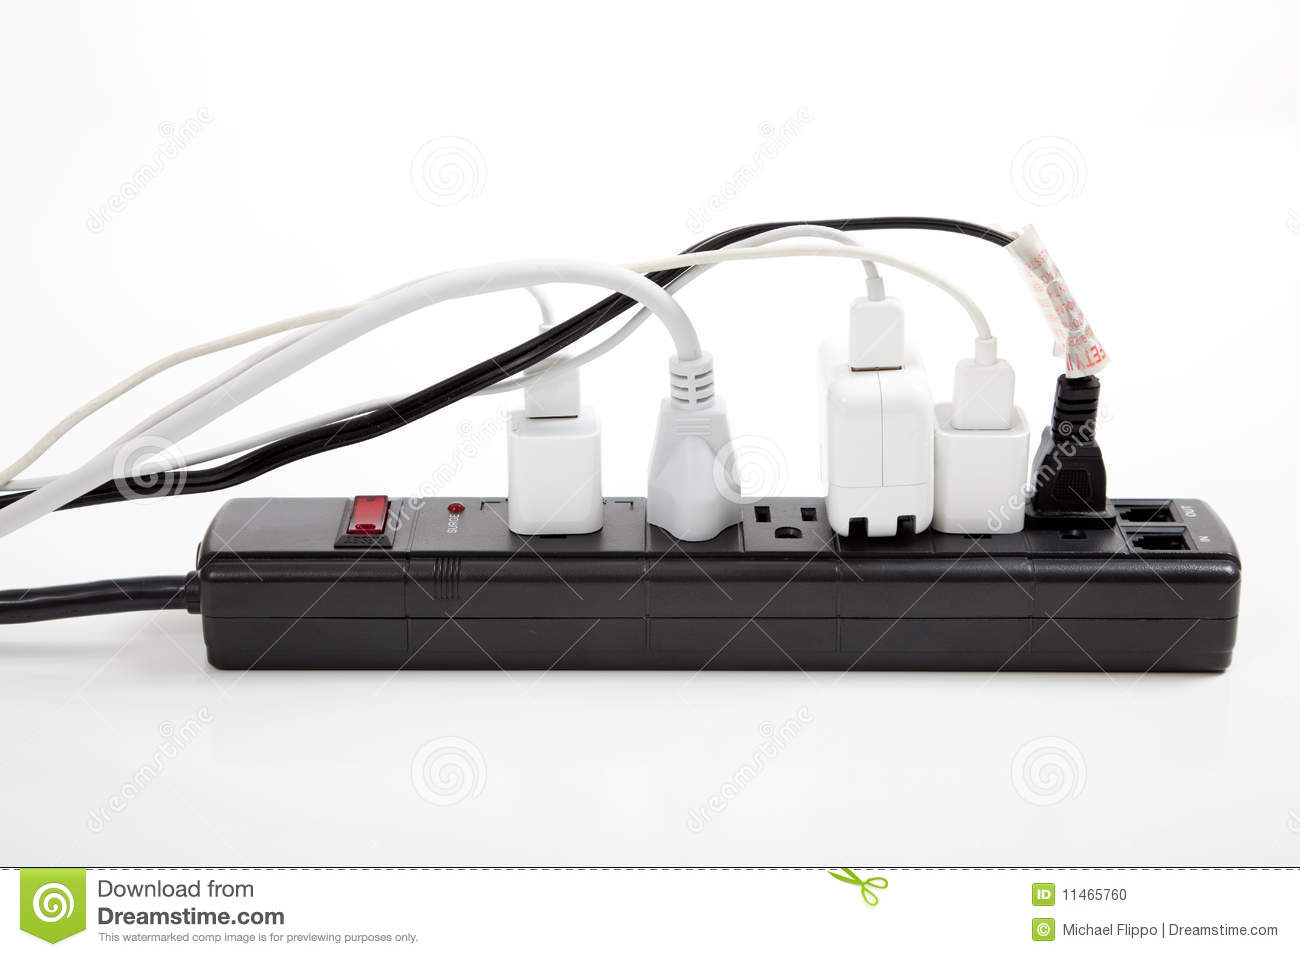 Over loaded surge protector